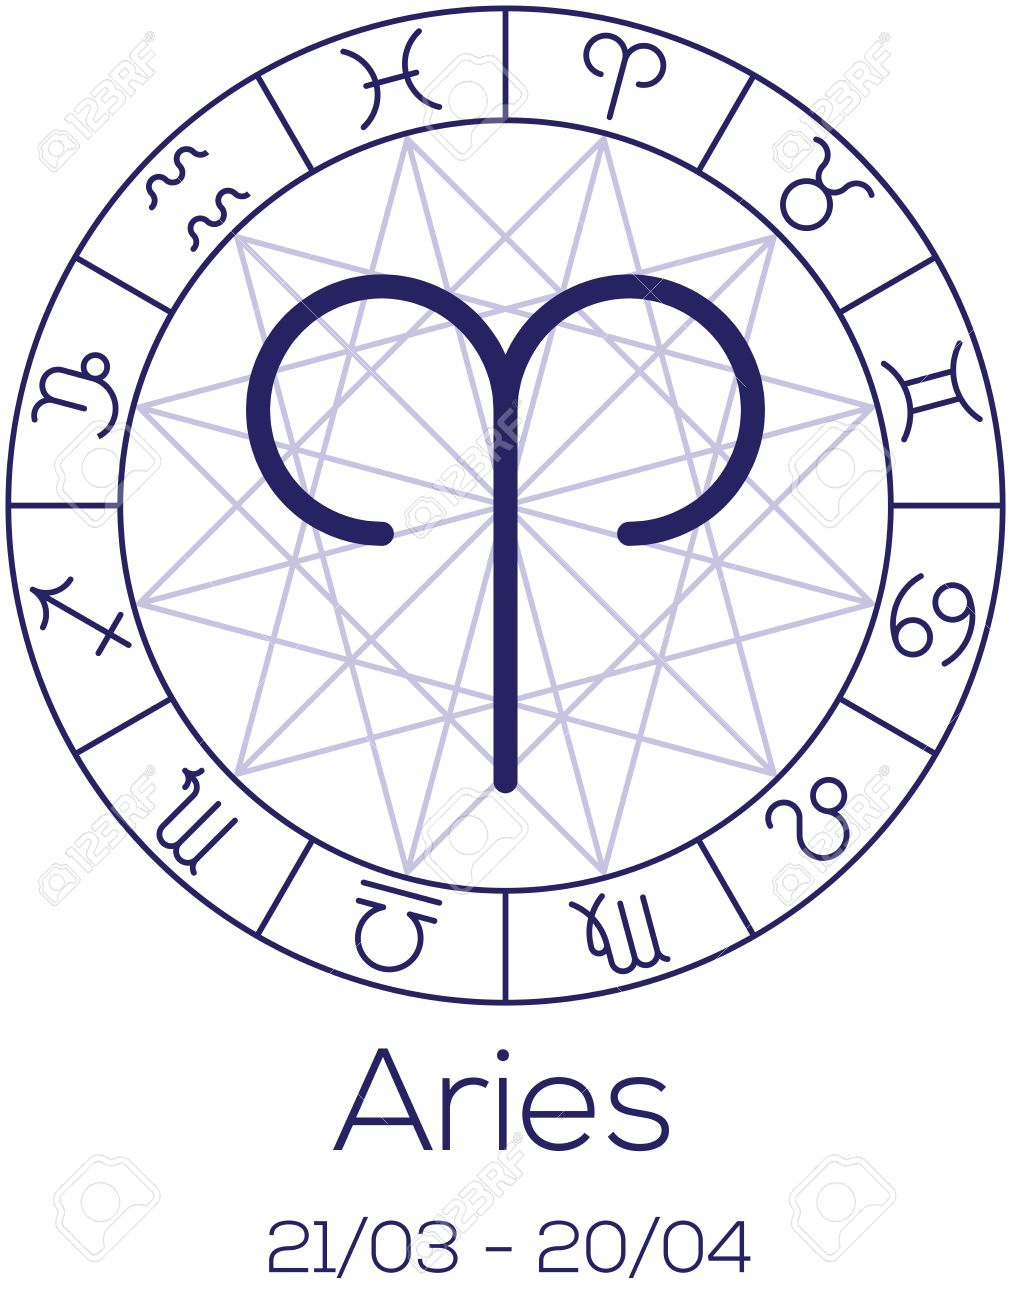 Zodiac sign aries astrological symbol in wheel with polygonal zodiac sign aries astrological symbol in wheel with polygonal background astrology chart in nvjuhfo Image collections